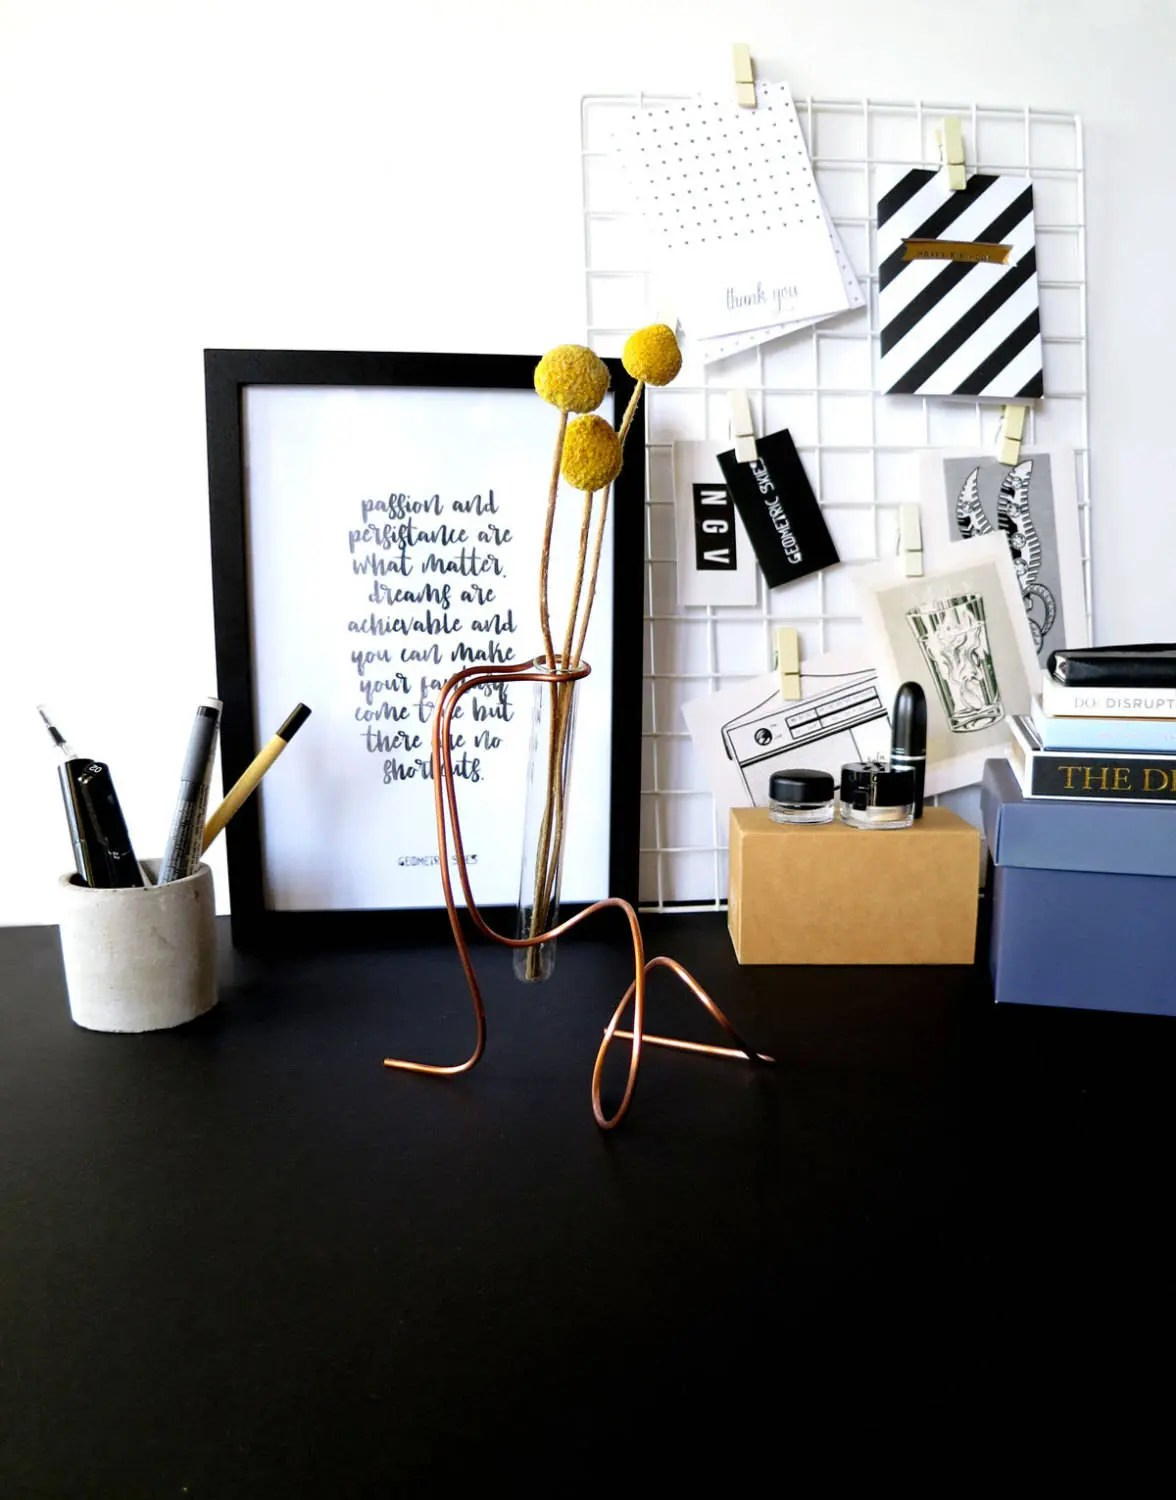 Gift Ideas For New Homeowner Unique Desk Planter New Homeowner Gift Ideas For Desk Desk